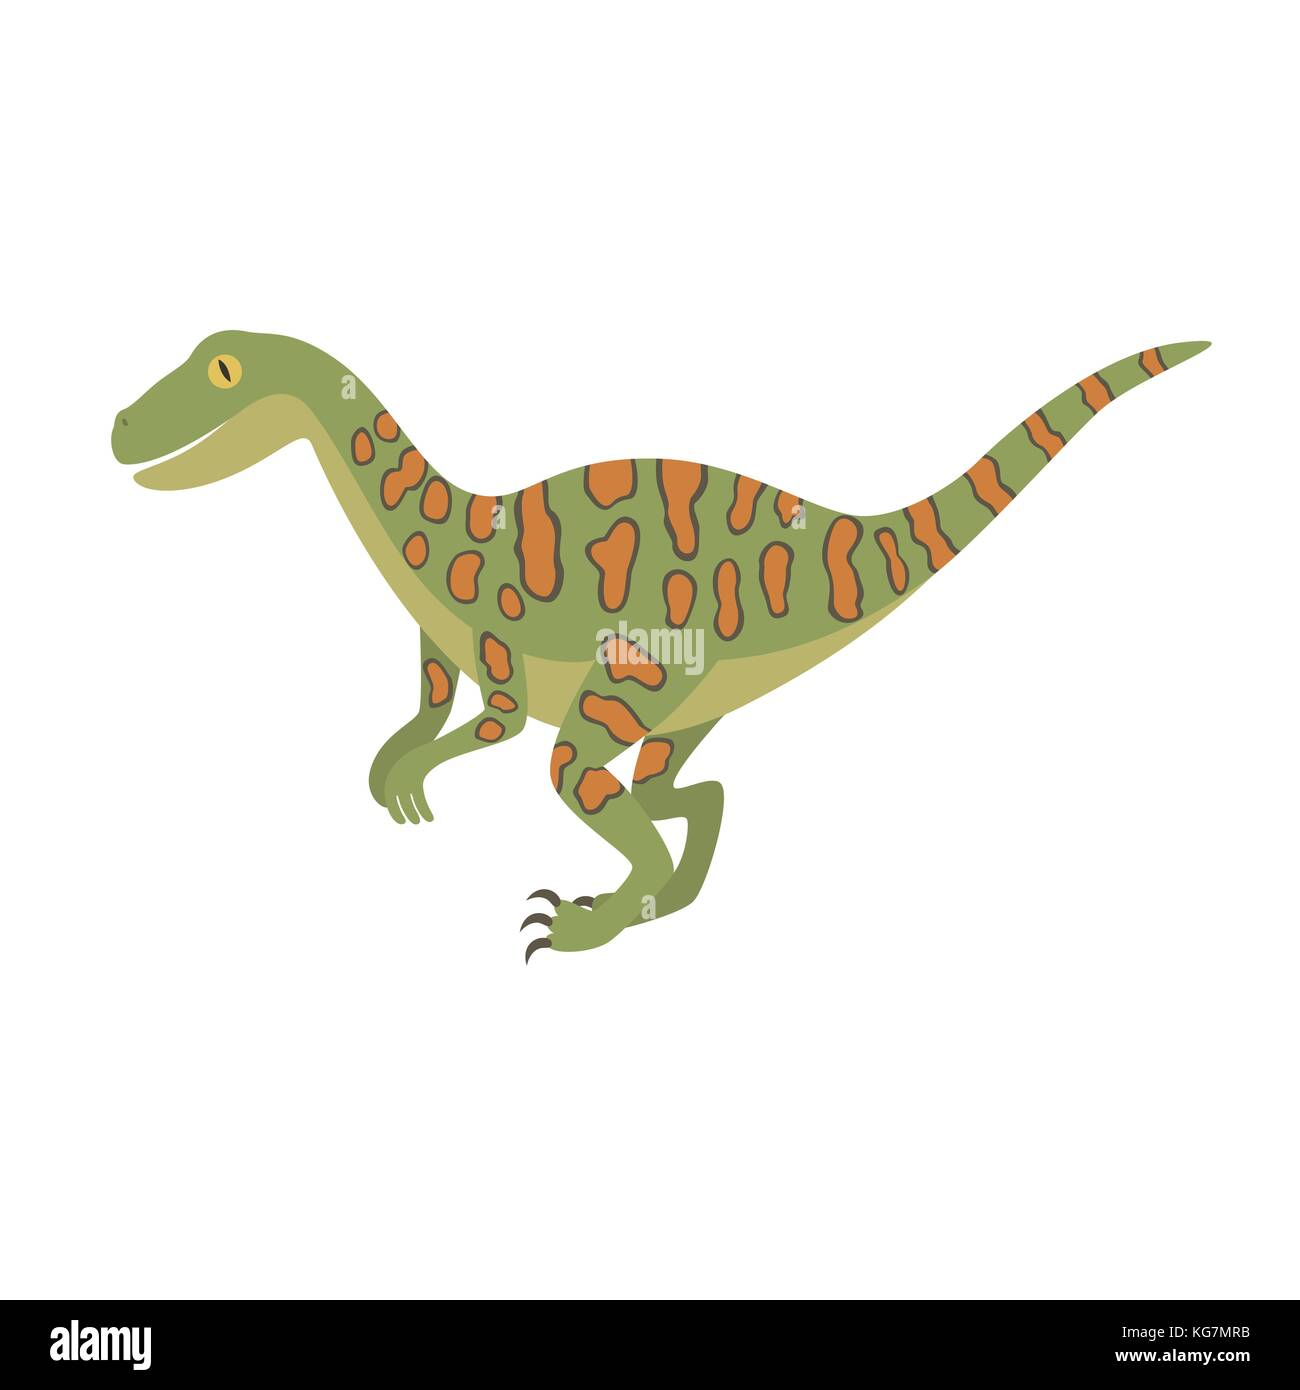 Deinonychus dinosaur color dino design illustration - Stock Image